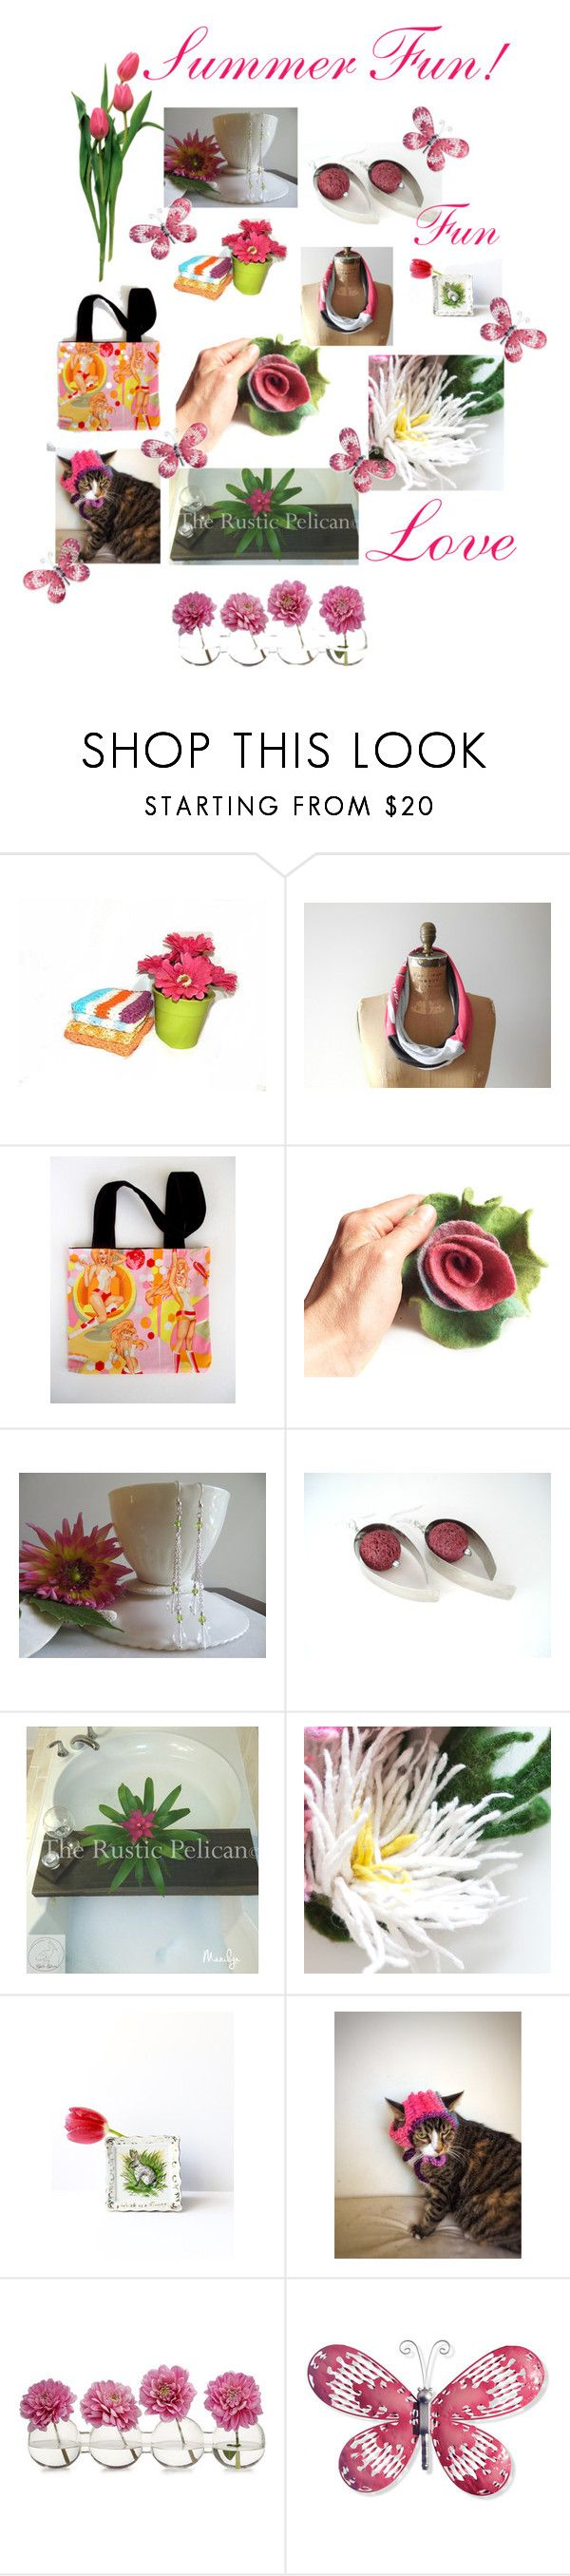 """""""Summer Fun!"""" by therusticpelican ❤ liked on Polyvore featuring National Tree Company, modern, contemporary, rustic and vintage"""